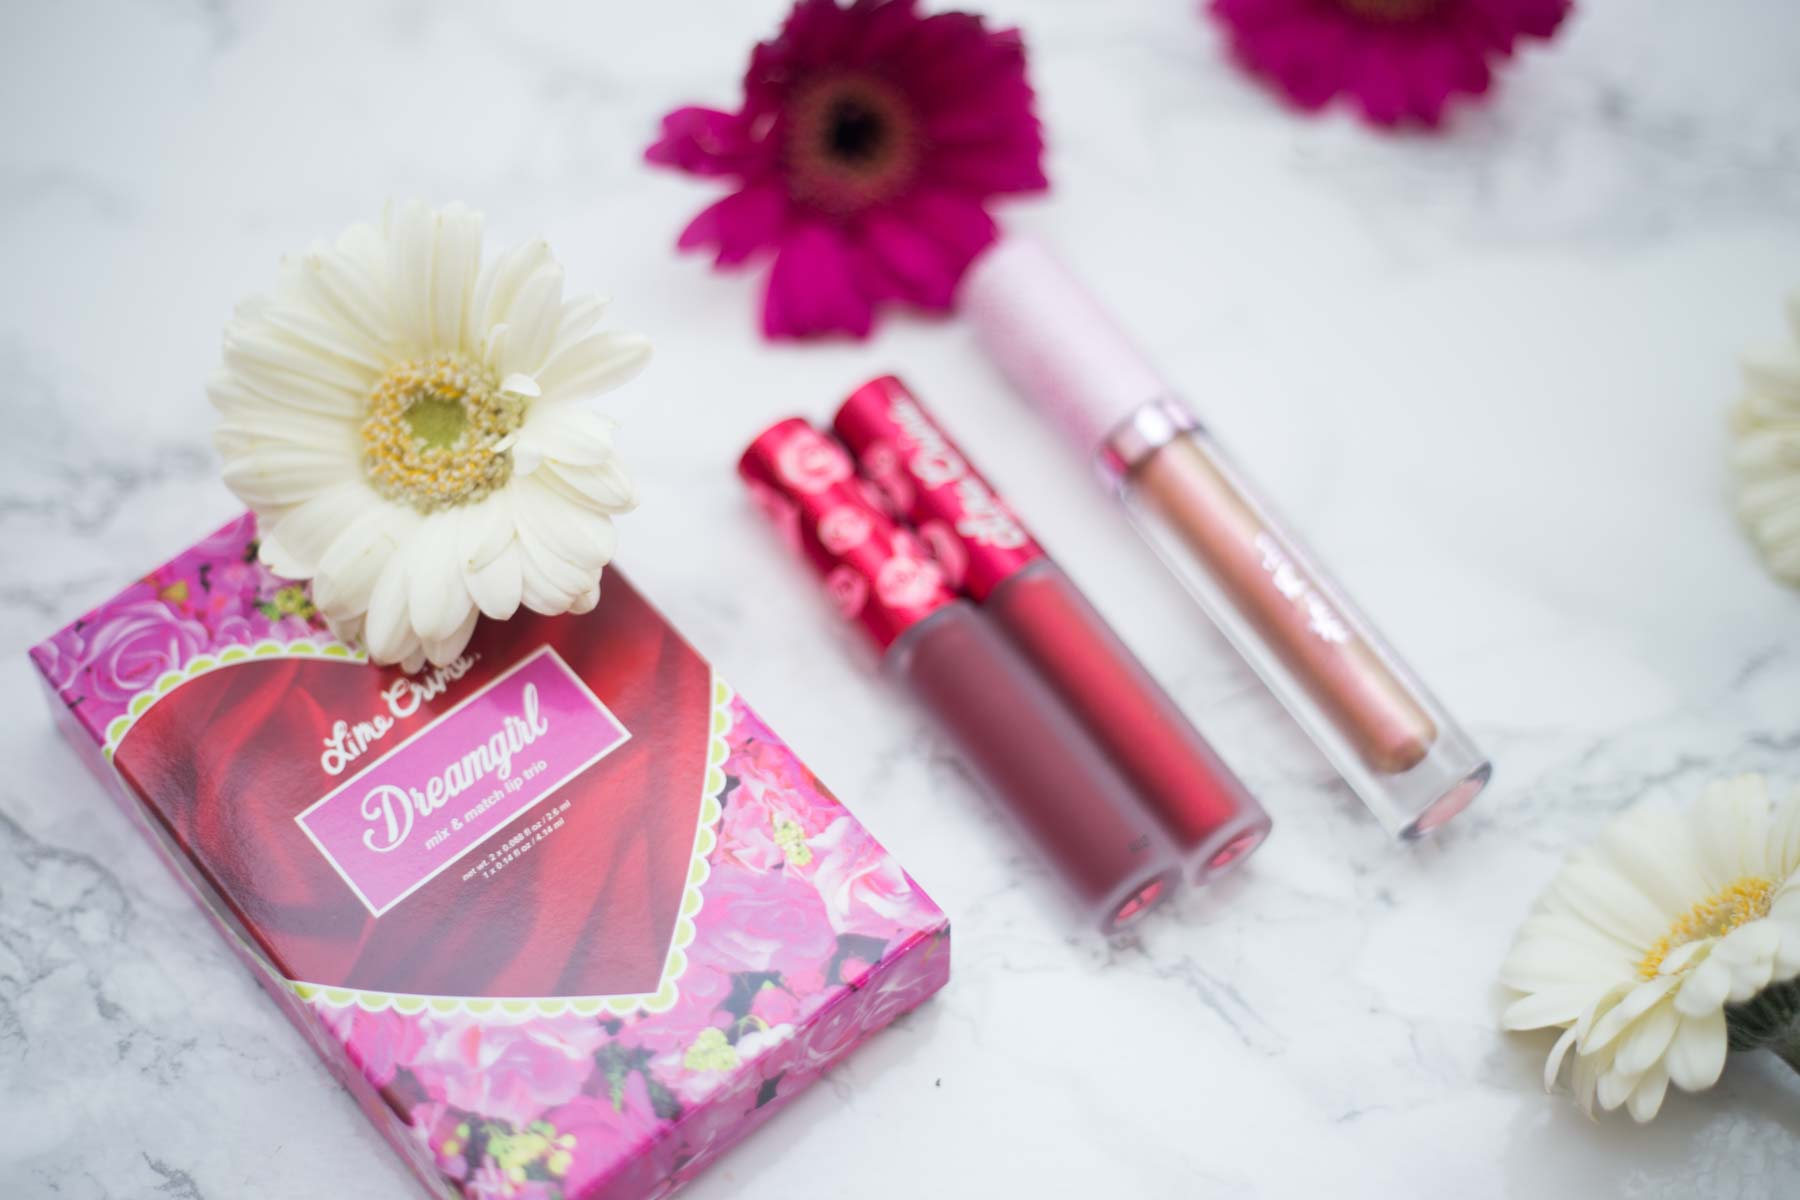 dreamgirl bundle limecrime